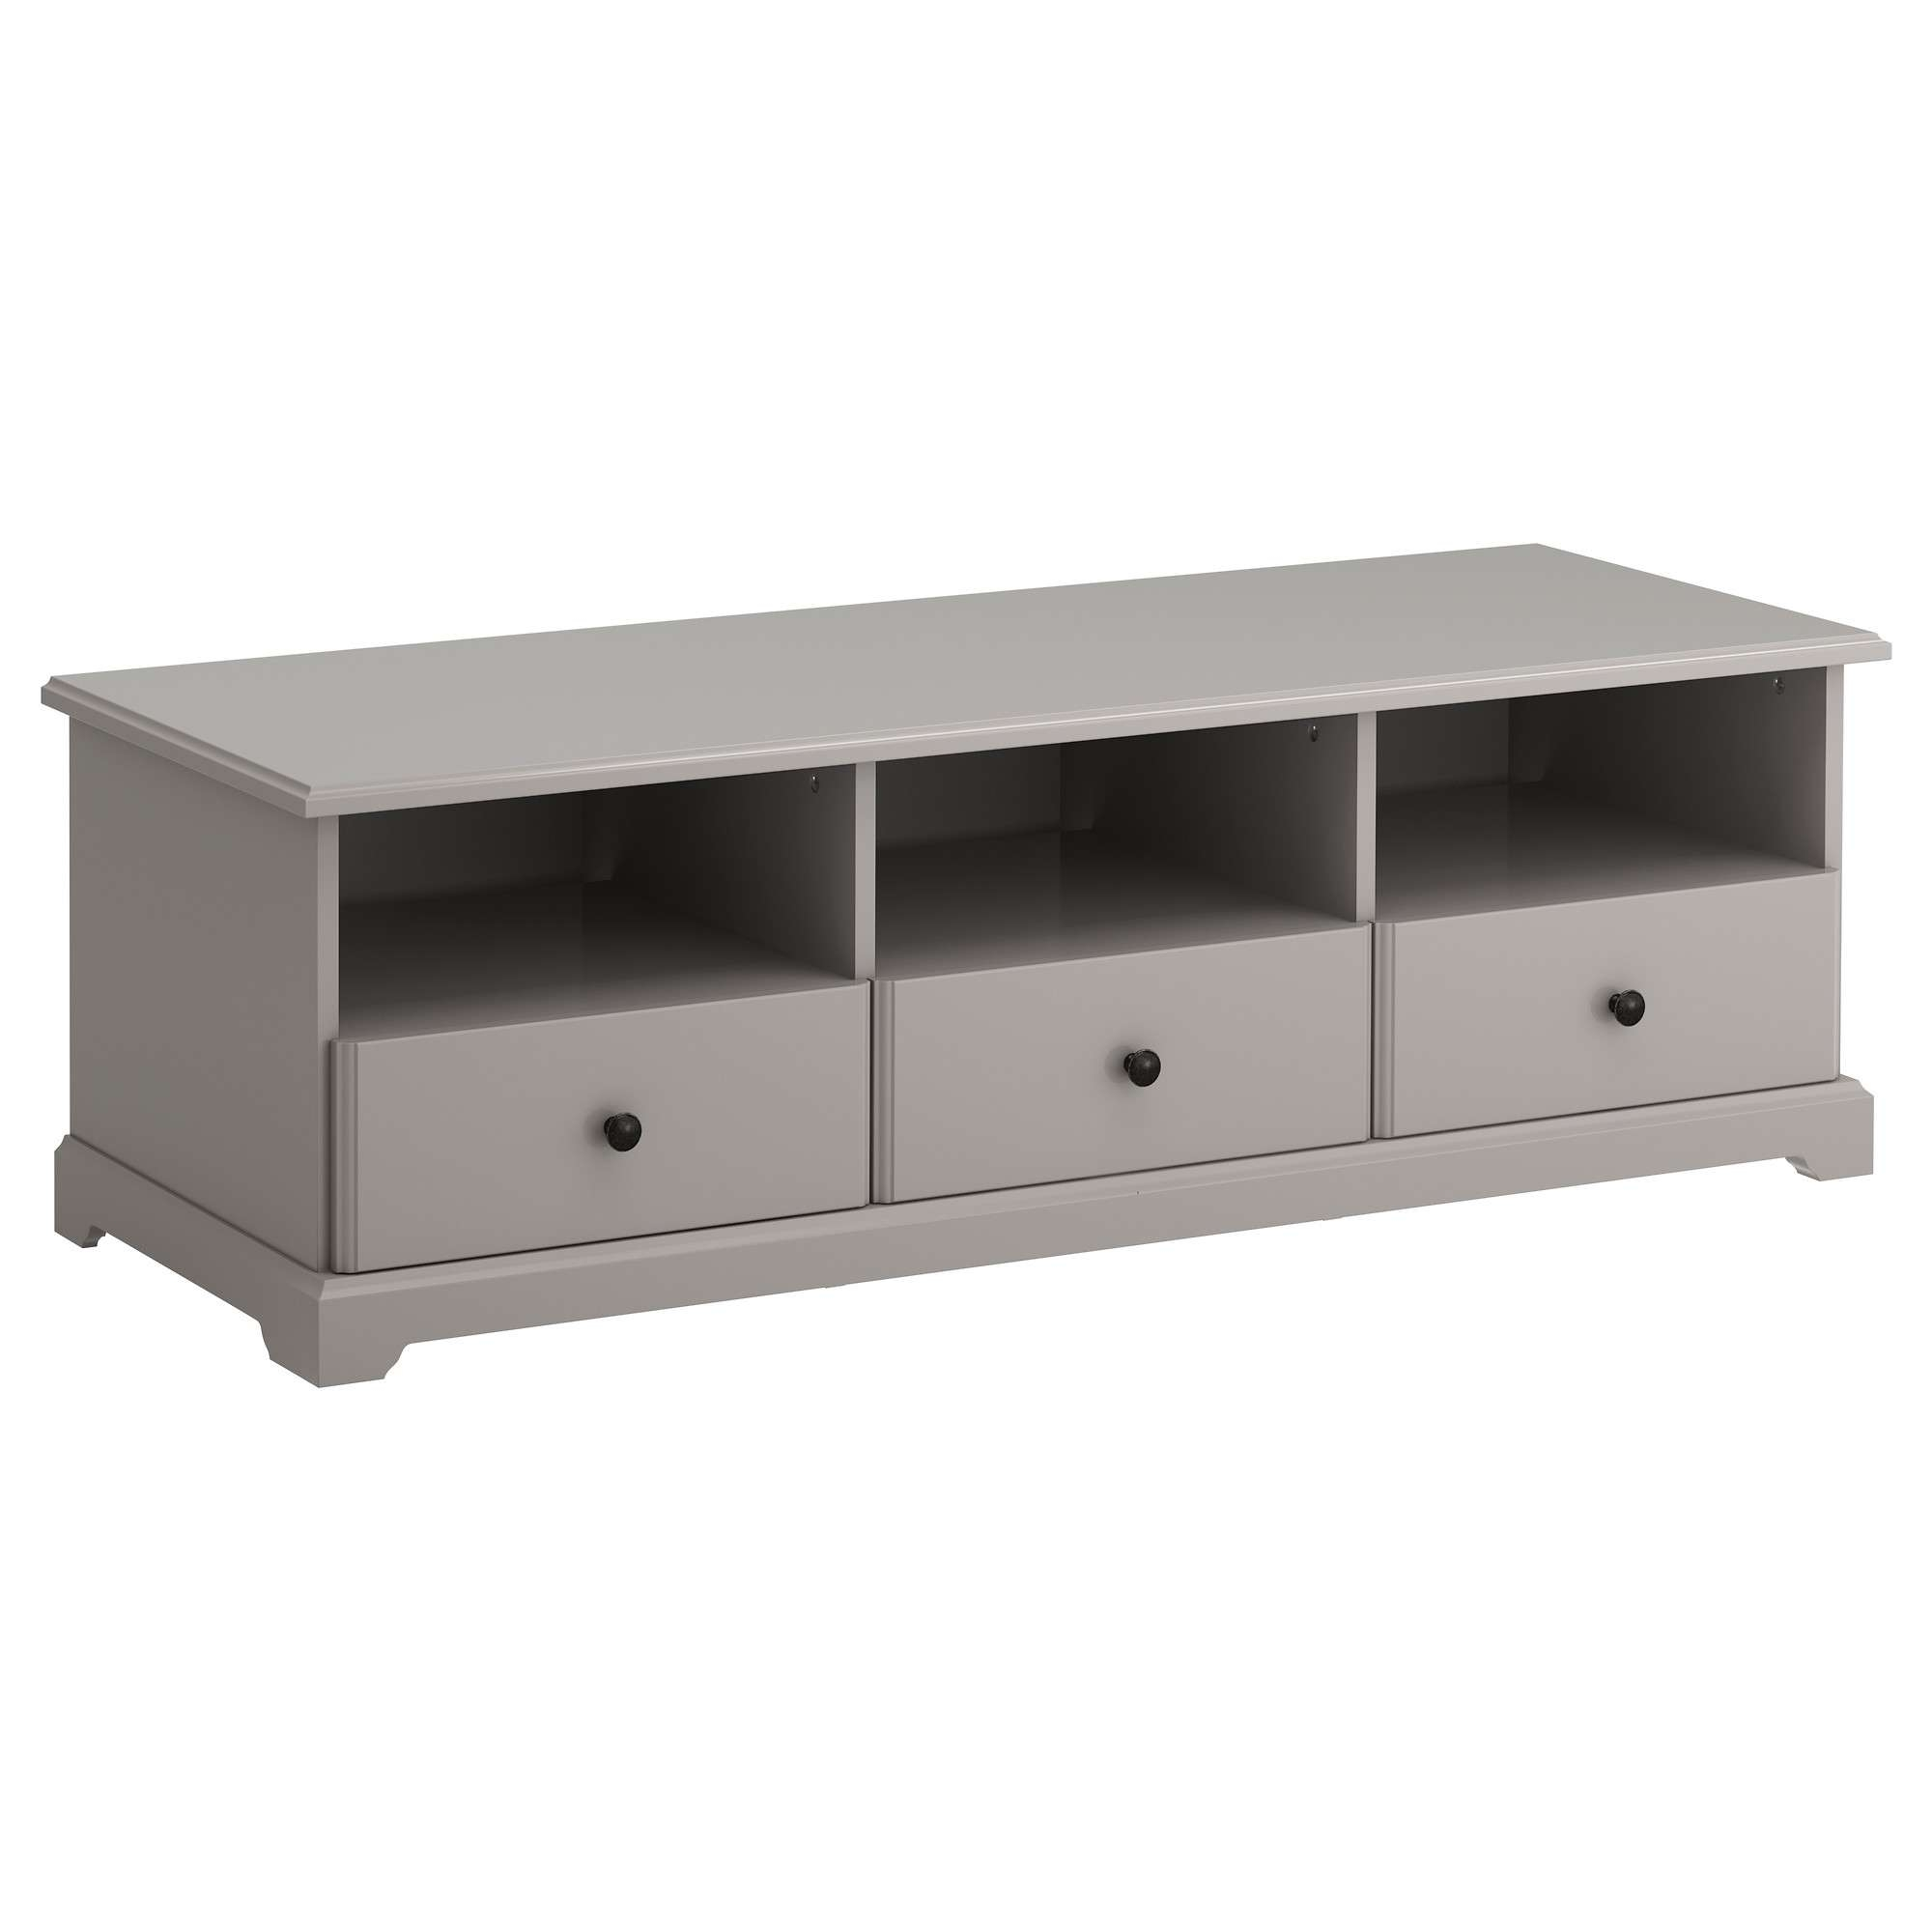 Liatorp Tv Bench – Gray – Ikea For Tv Cabinets With Drawers (View 7 of 20)